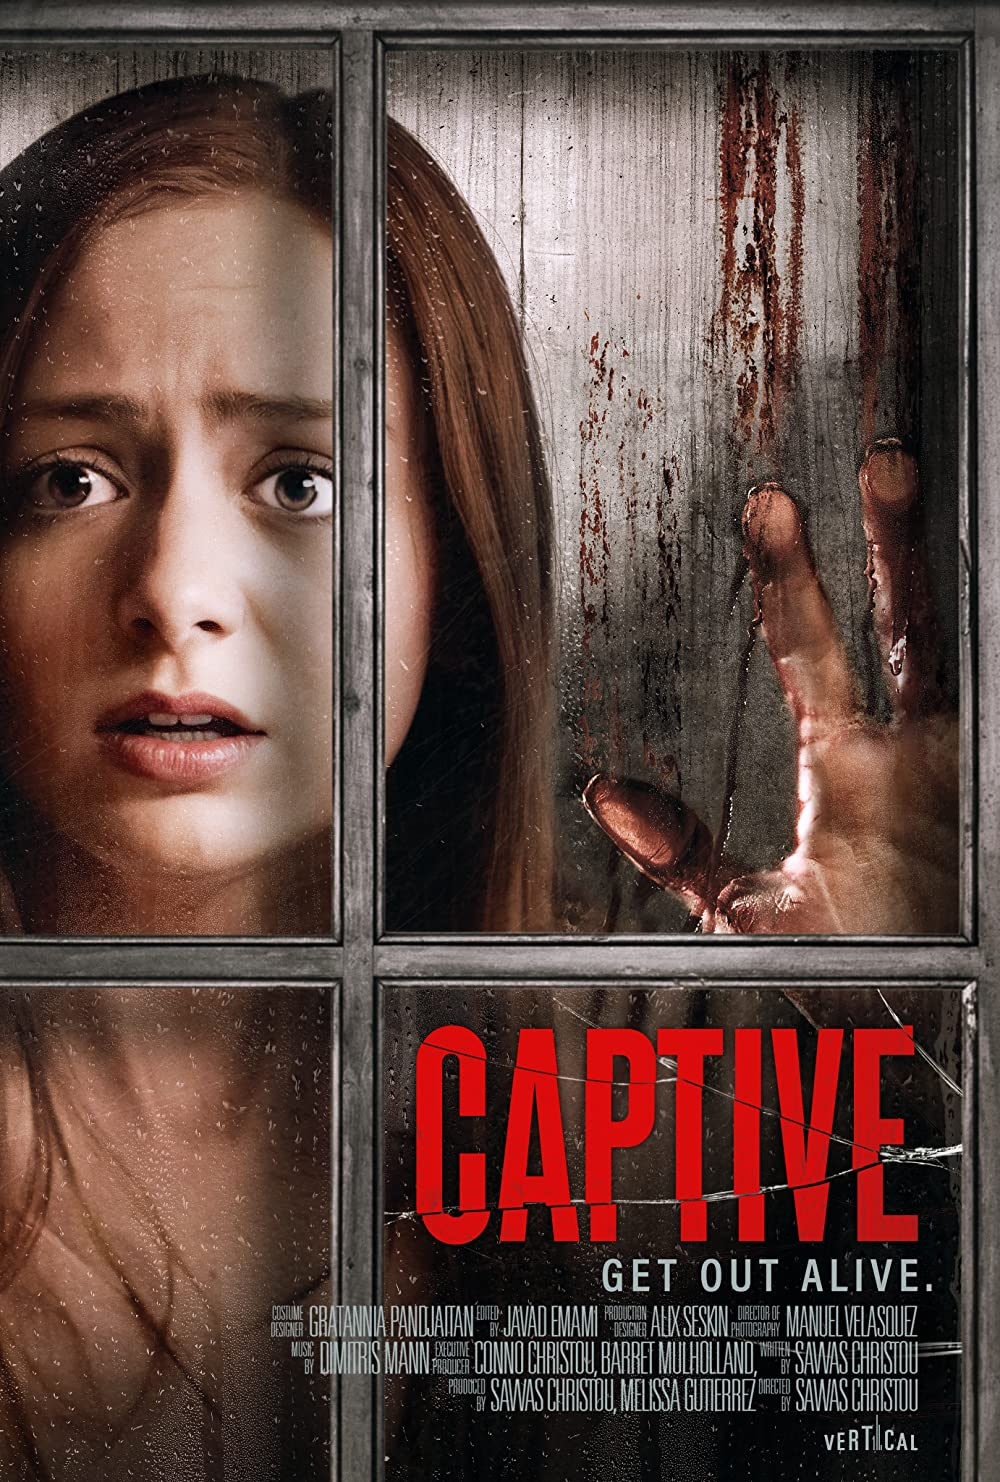 Captive 2020 English 1080p HDRip 1.3GB Download